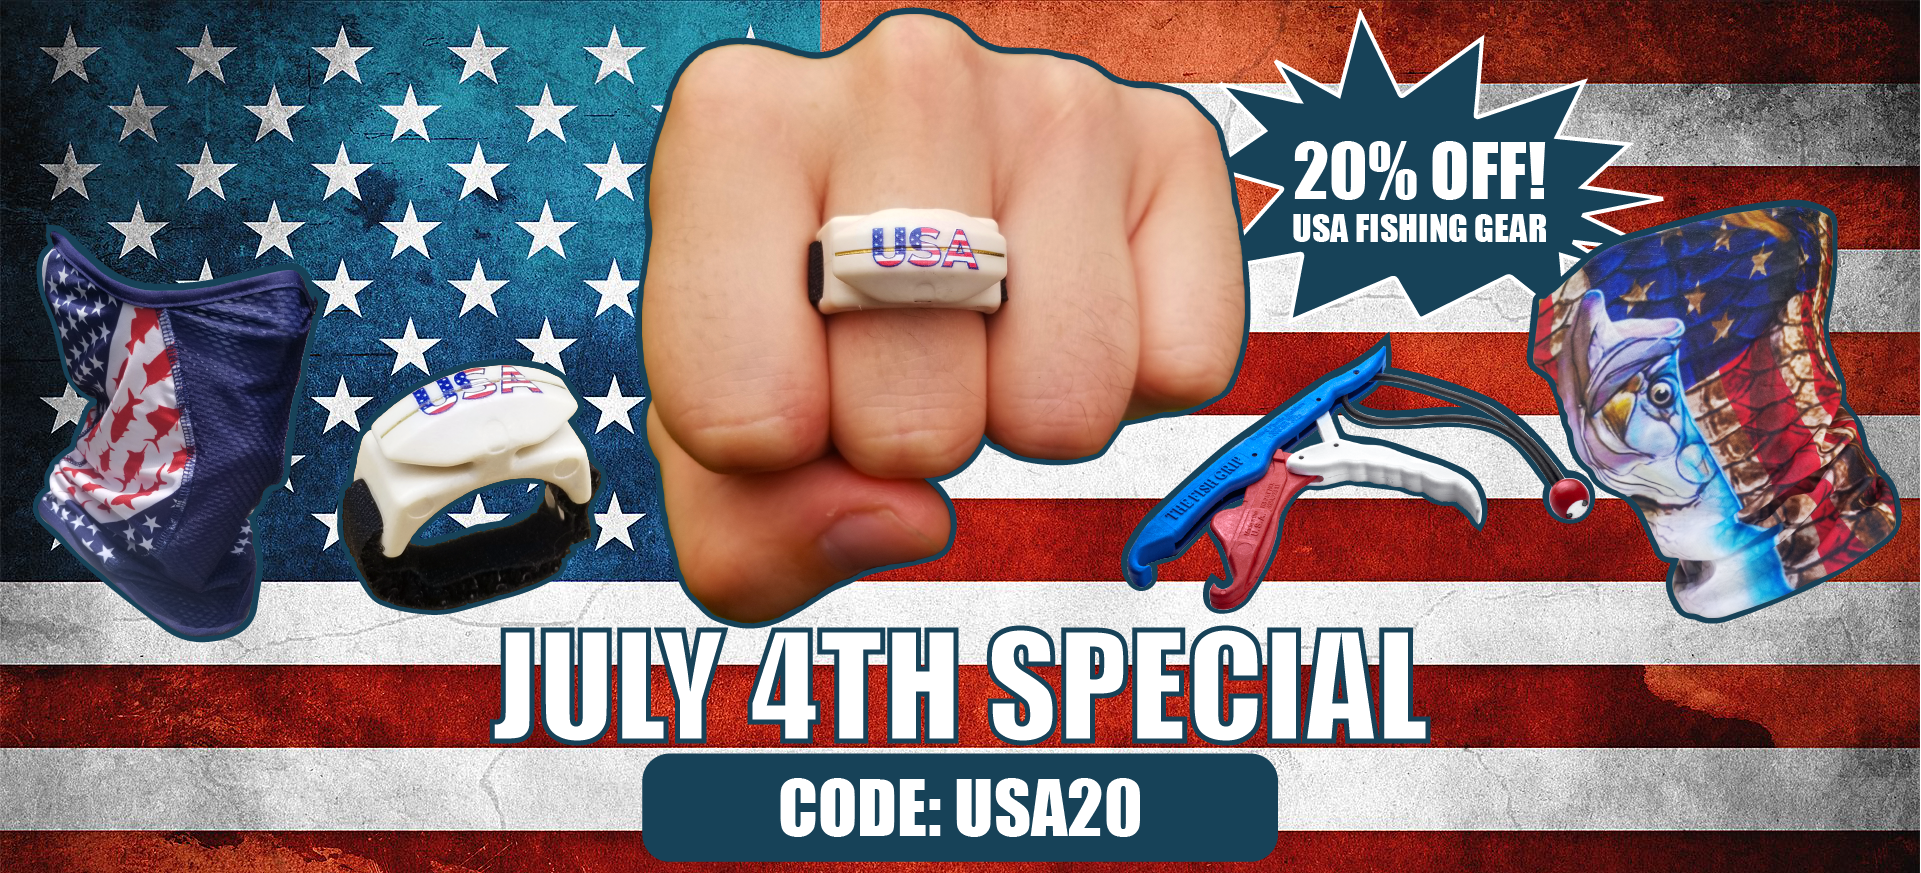 JULY 4TH SPECIAL